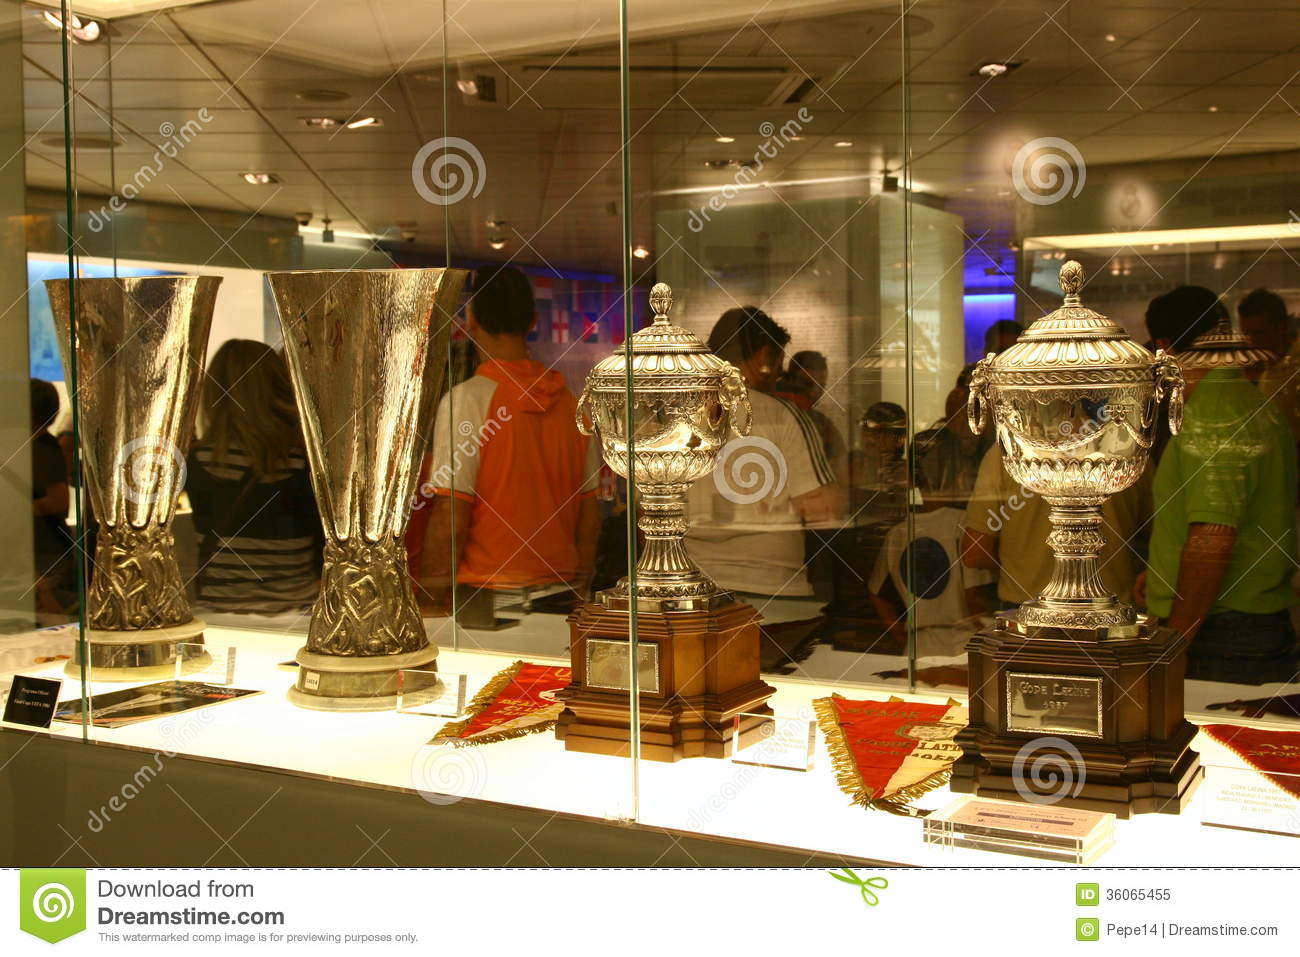 Football trophies in Real Madrid exhibition